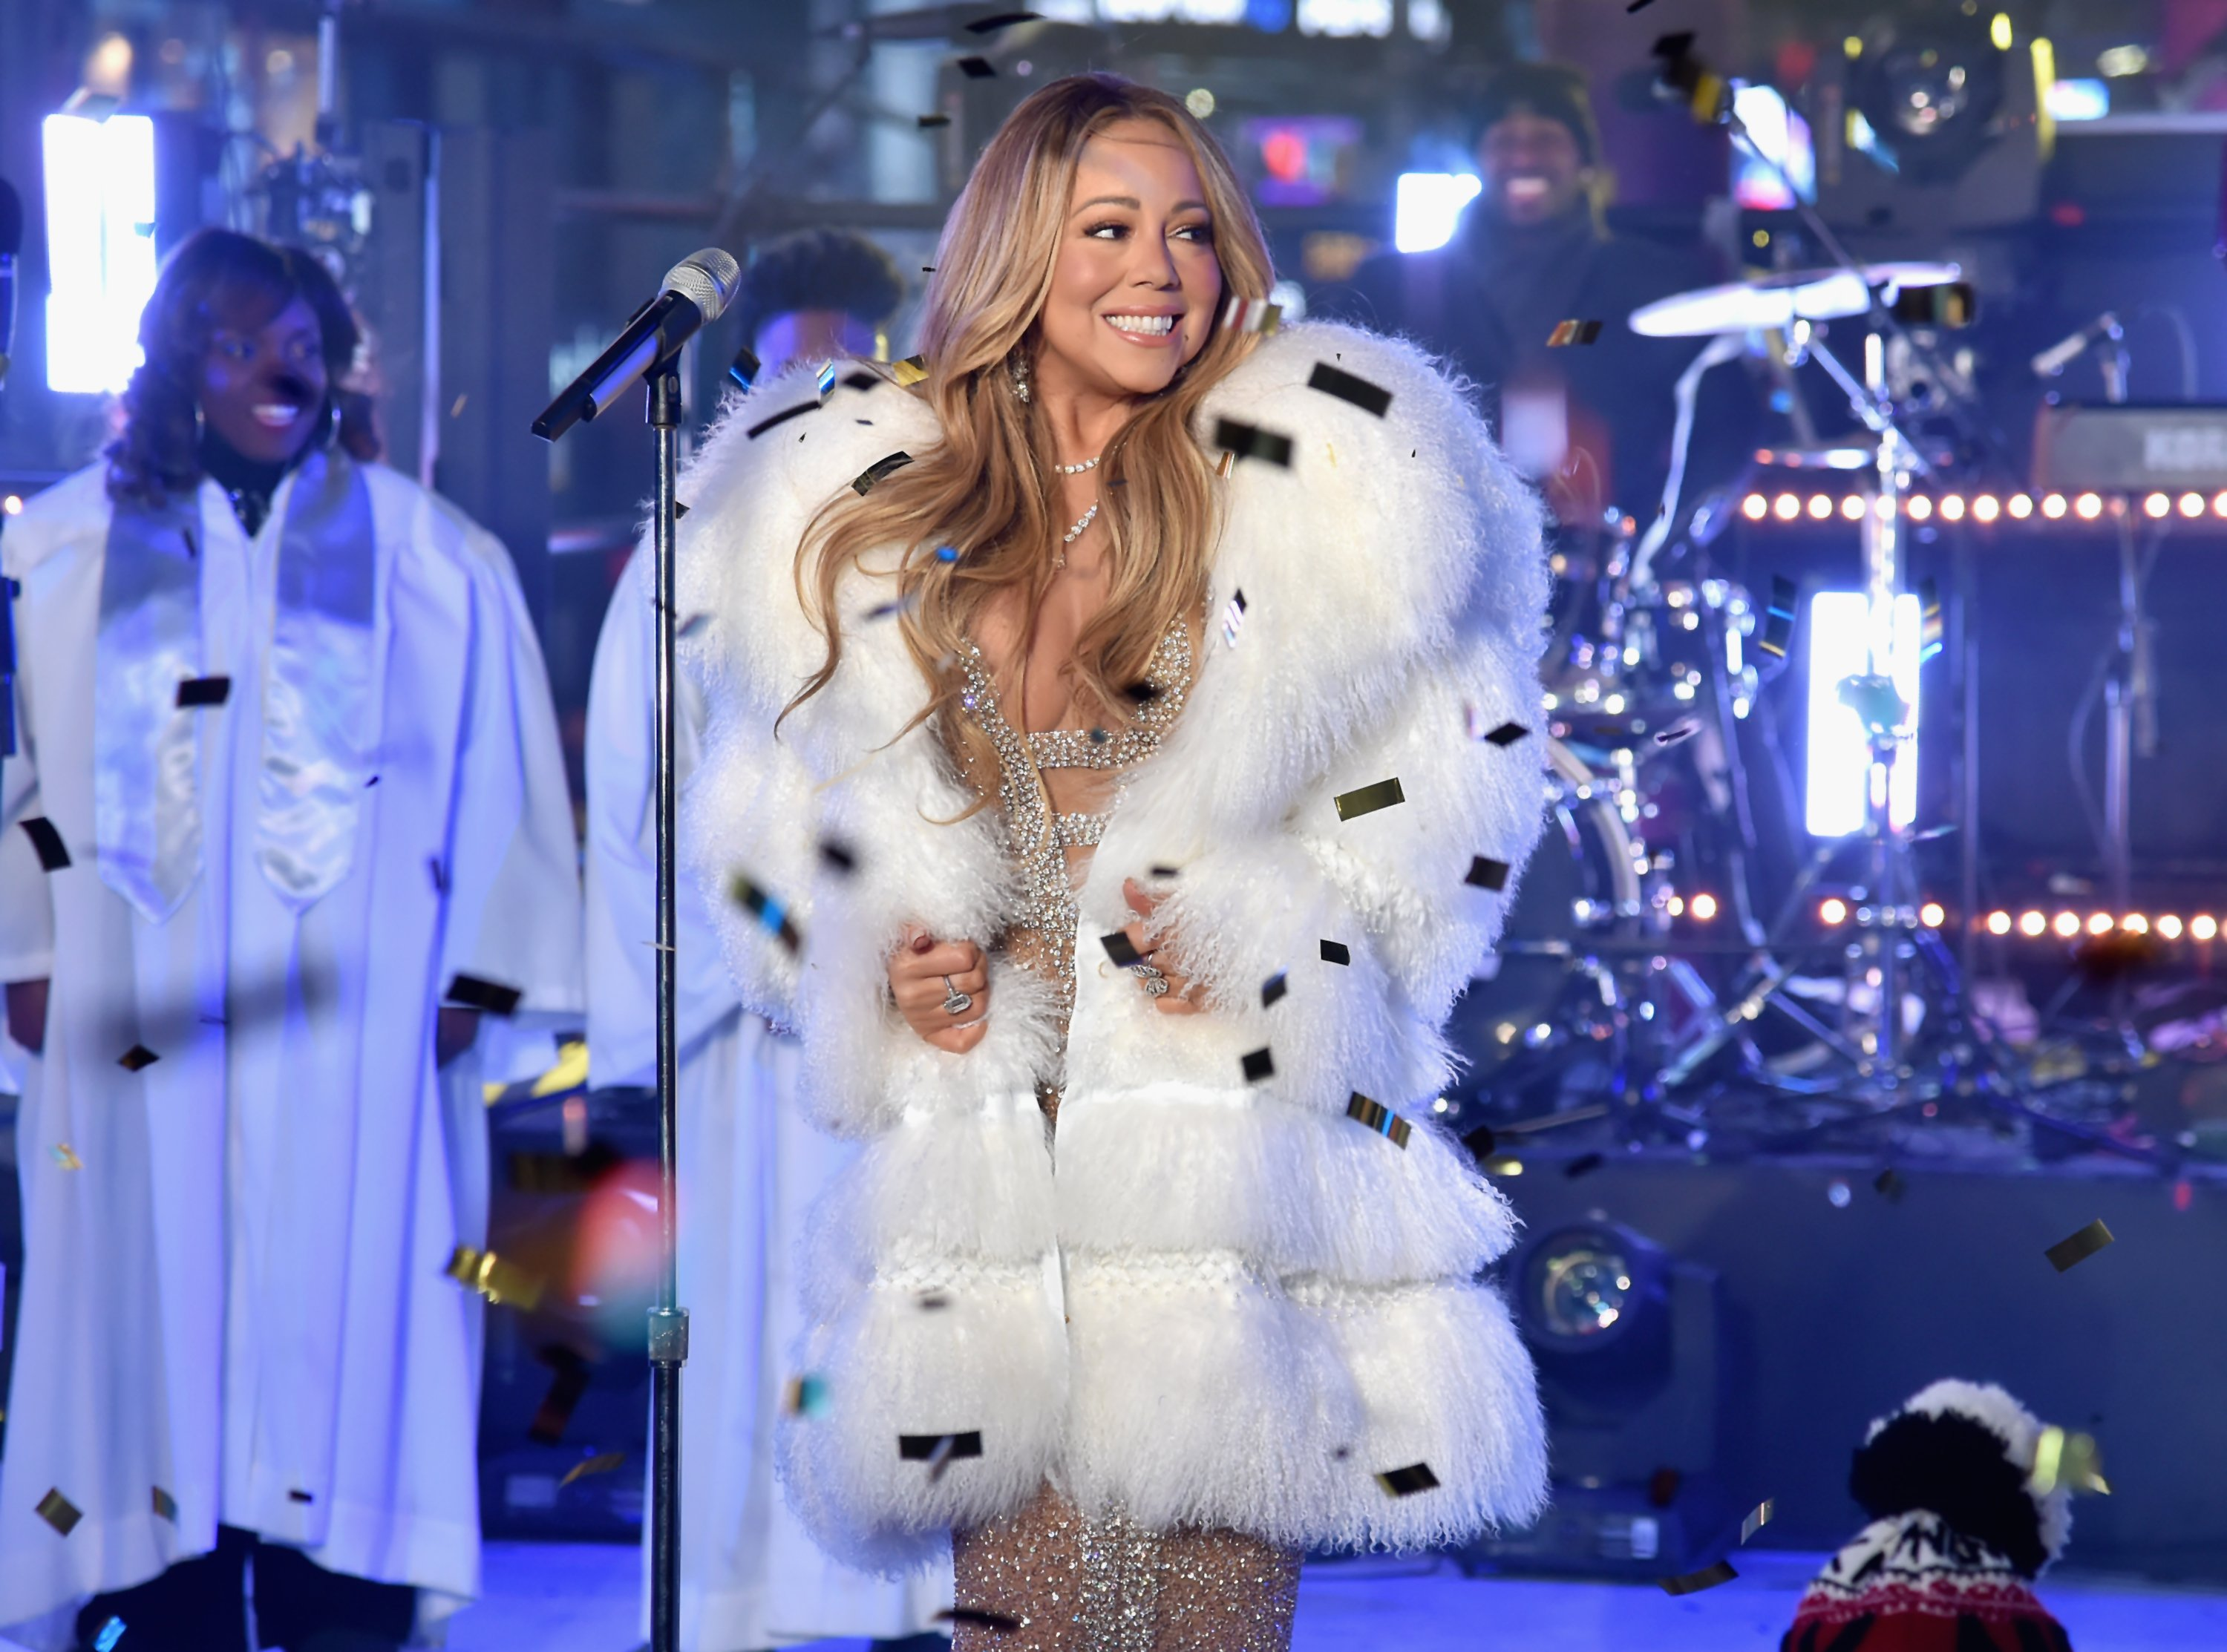 Mariah Carey at her 2018 New Years Eve performance | Getty Images